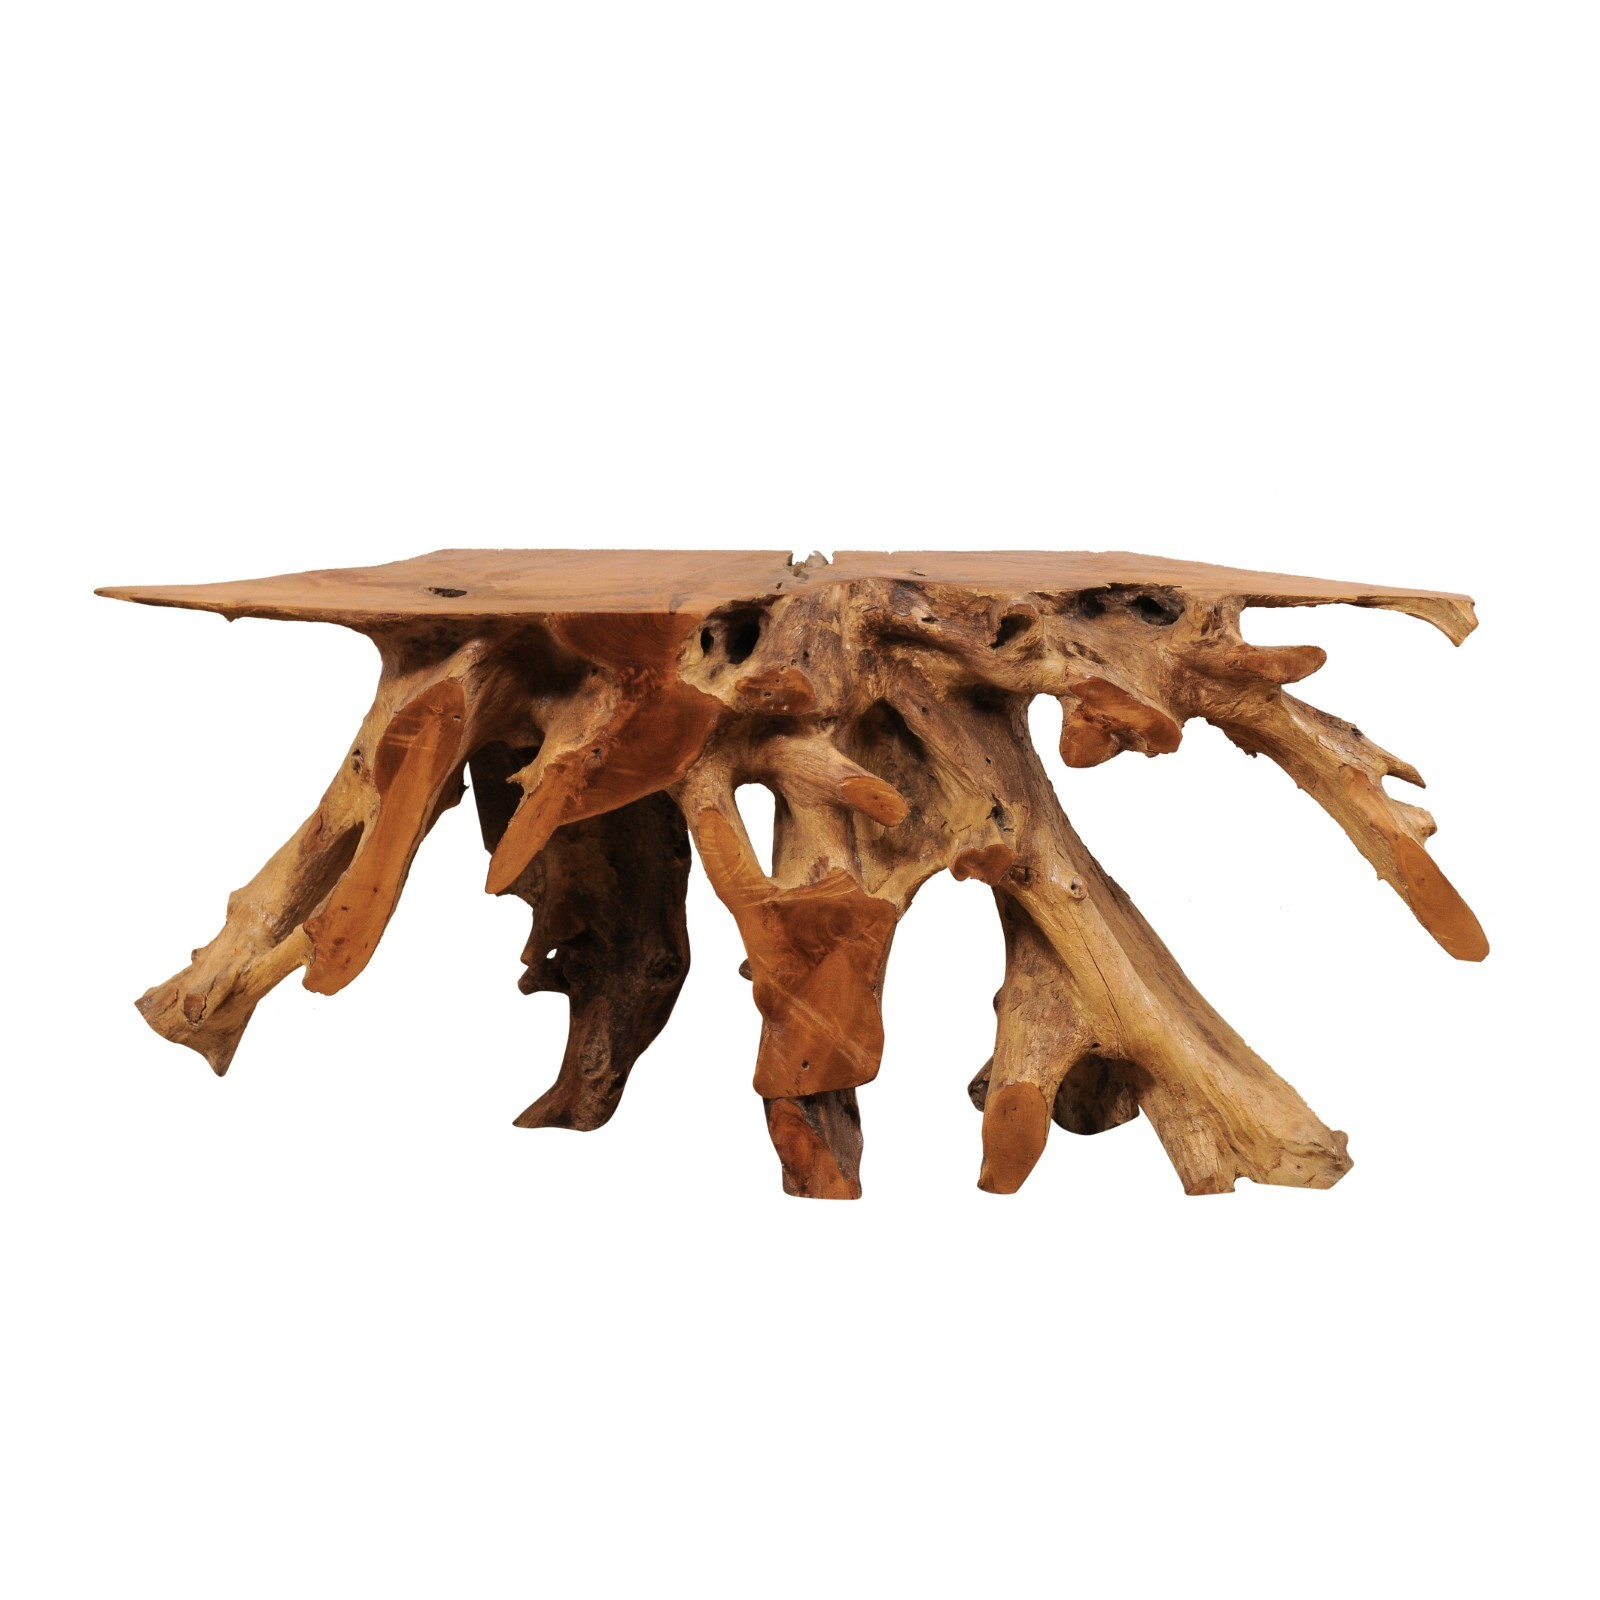 Polished Teak Root Wood Console, 5+ ft